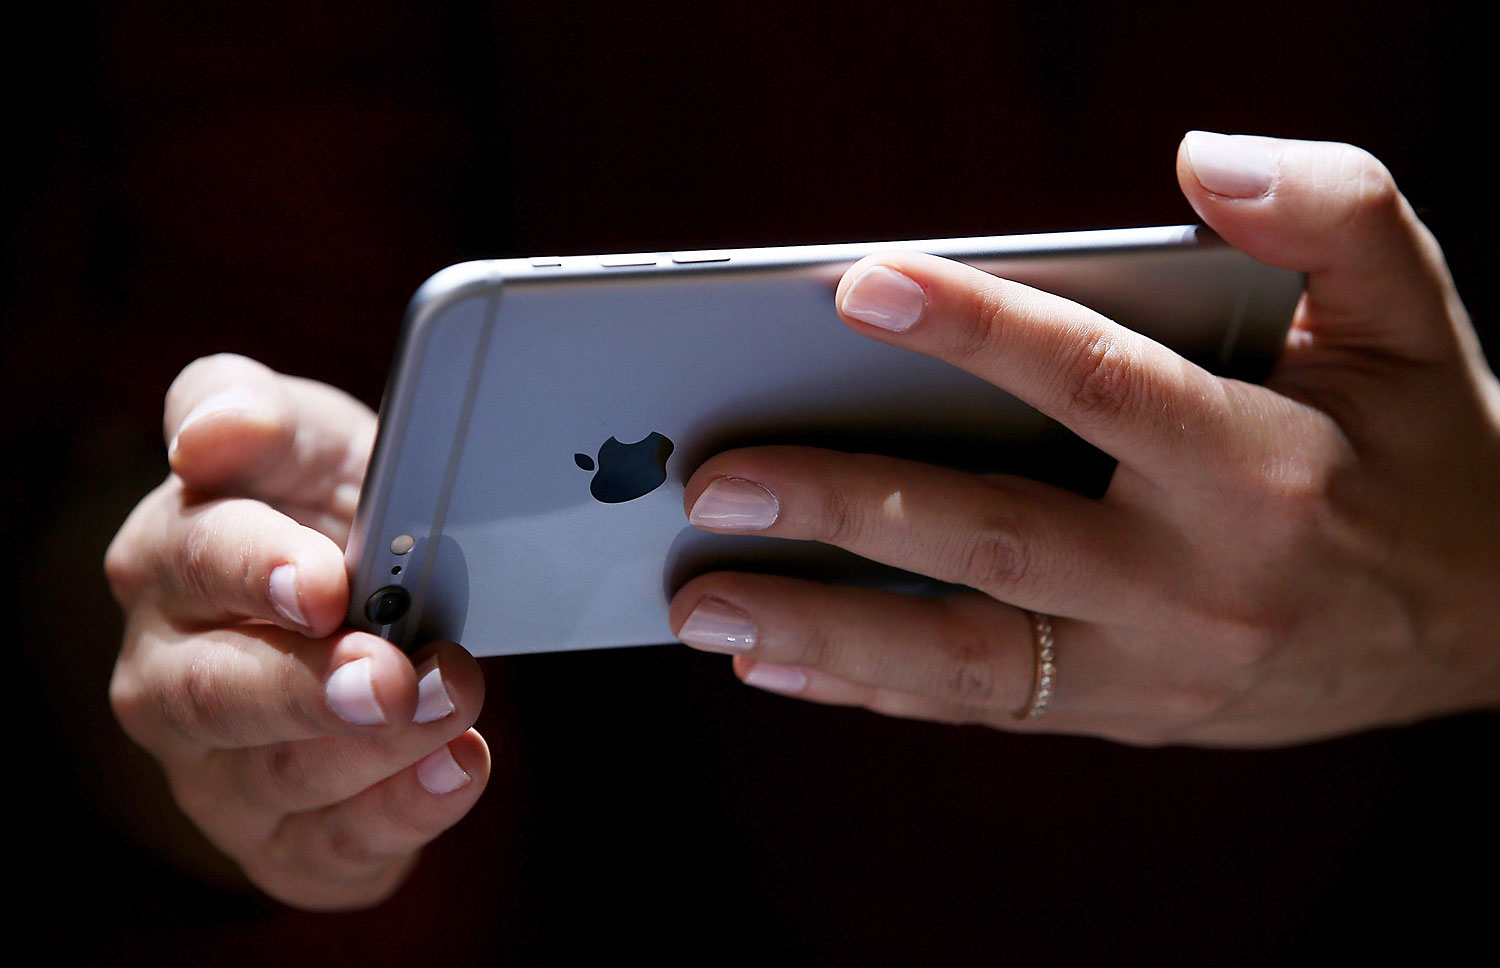 A member of the media inspects the new iPhone 6 during an Apple special event in Cupertino, Calif., on Sept. 9, 2014